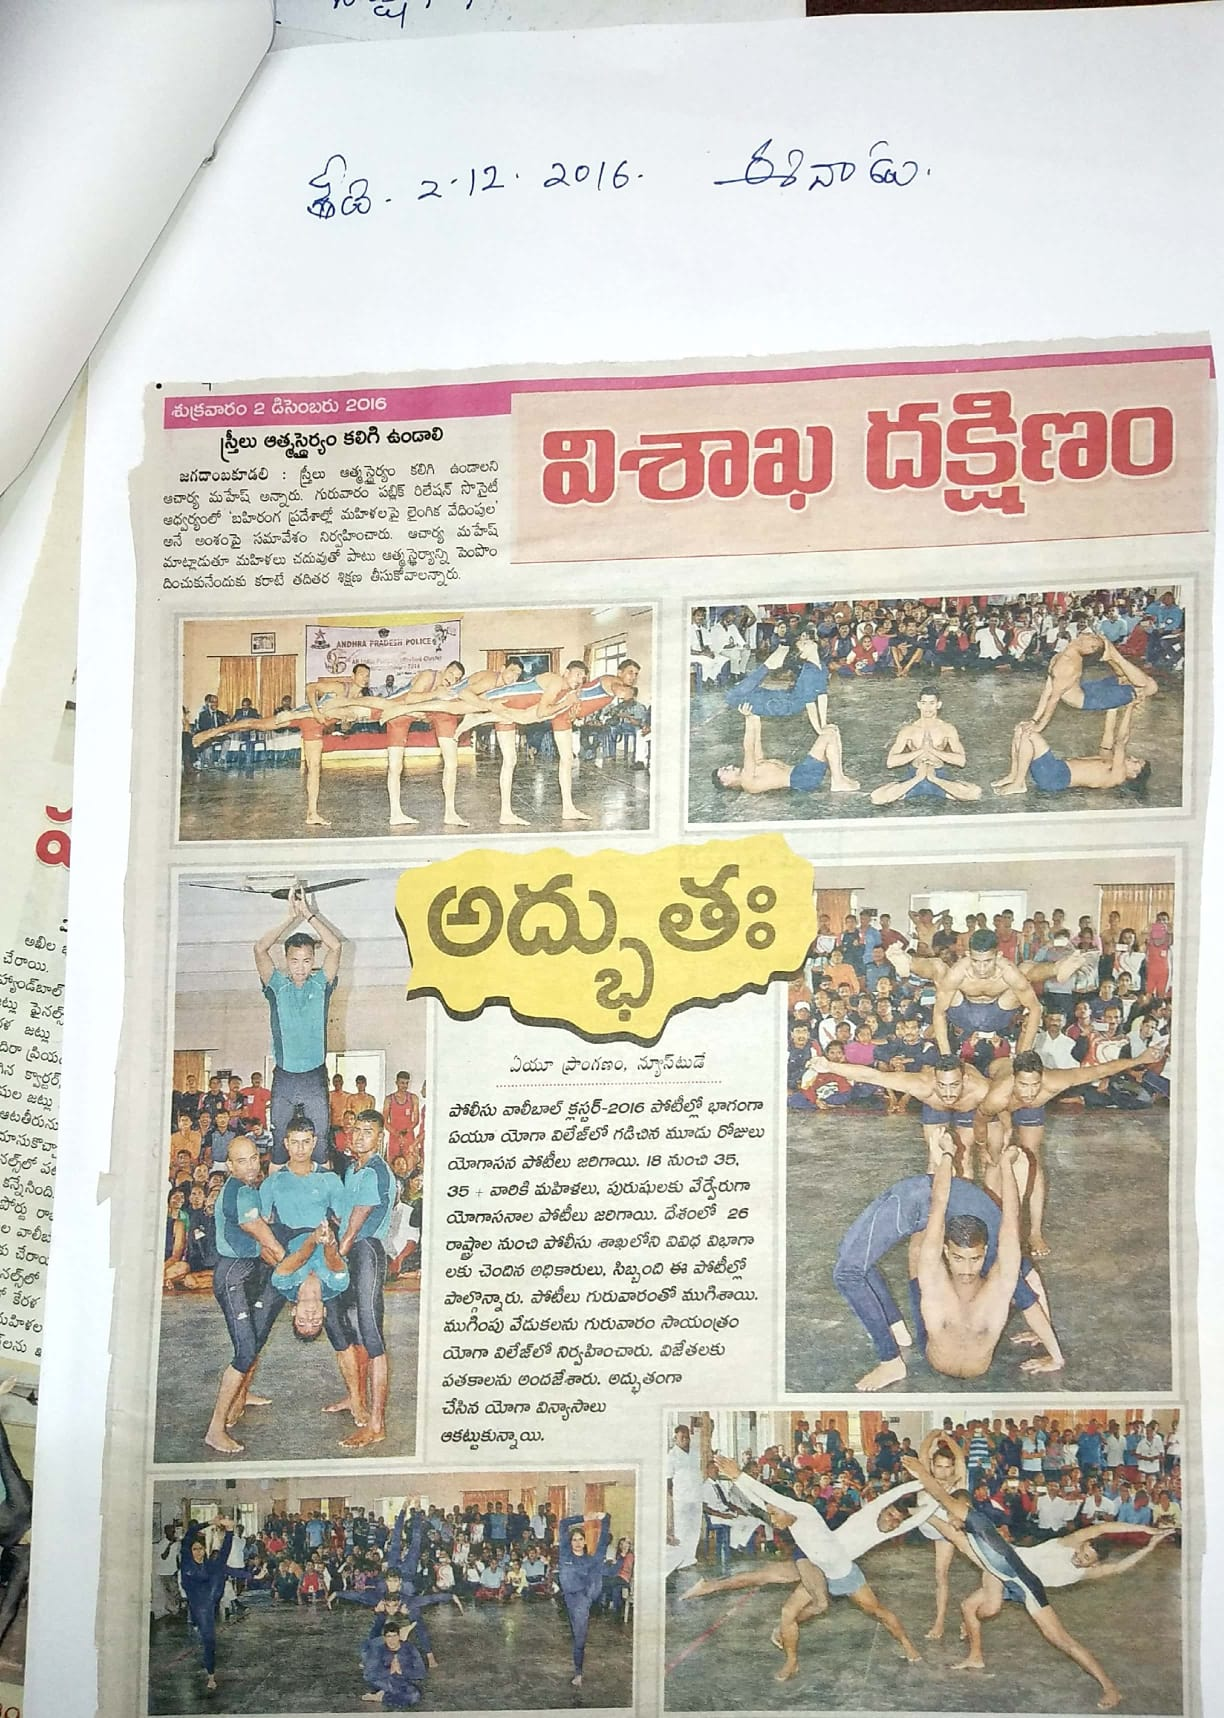 Police Sports Meet kicks to colorful starts